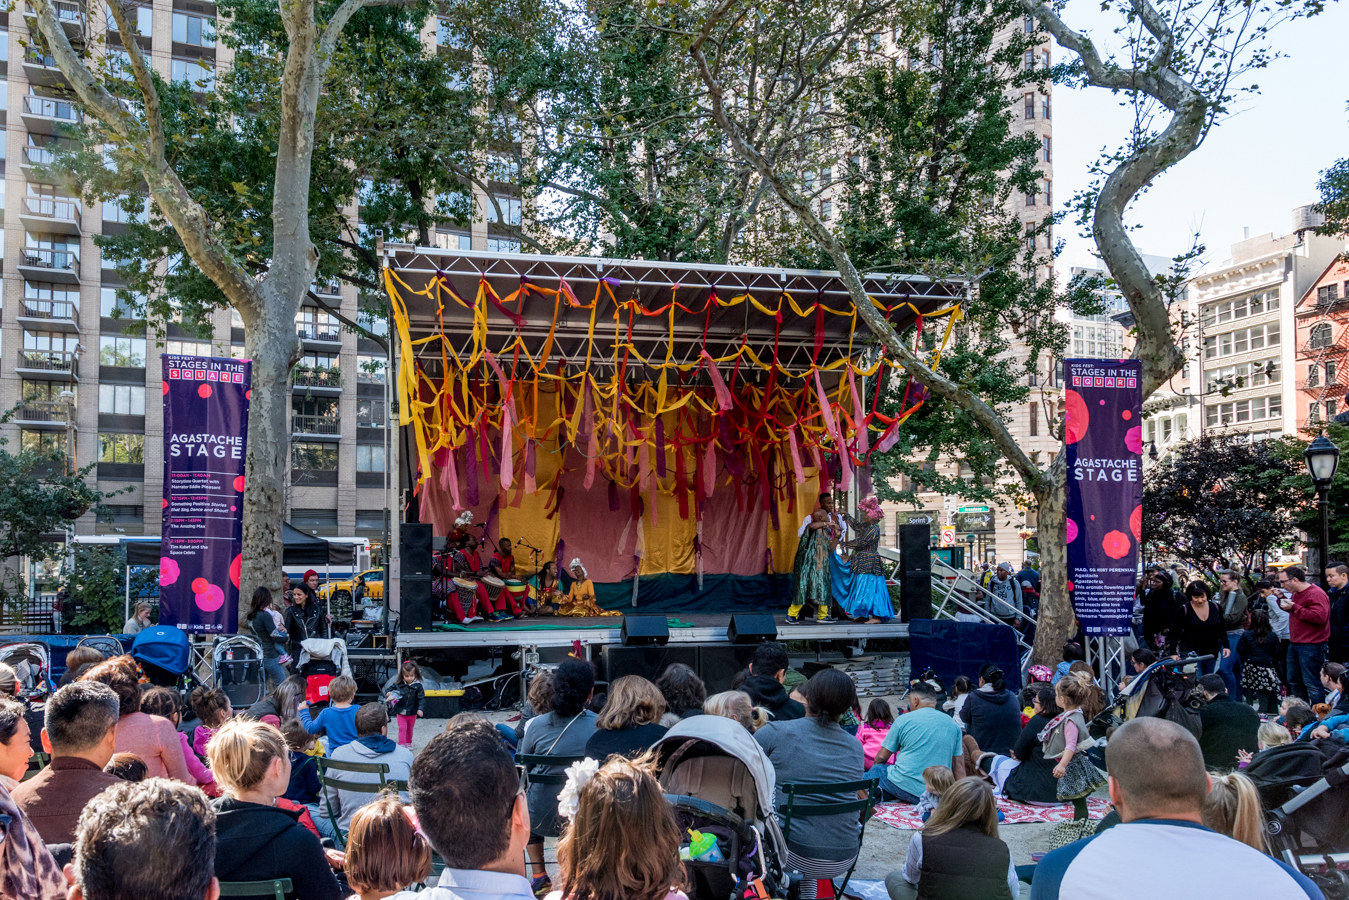 ROCK MAMA NYC LIFESTYLE BLOB-  KID'S FEST AT THE MADISON SQUARE PARK